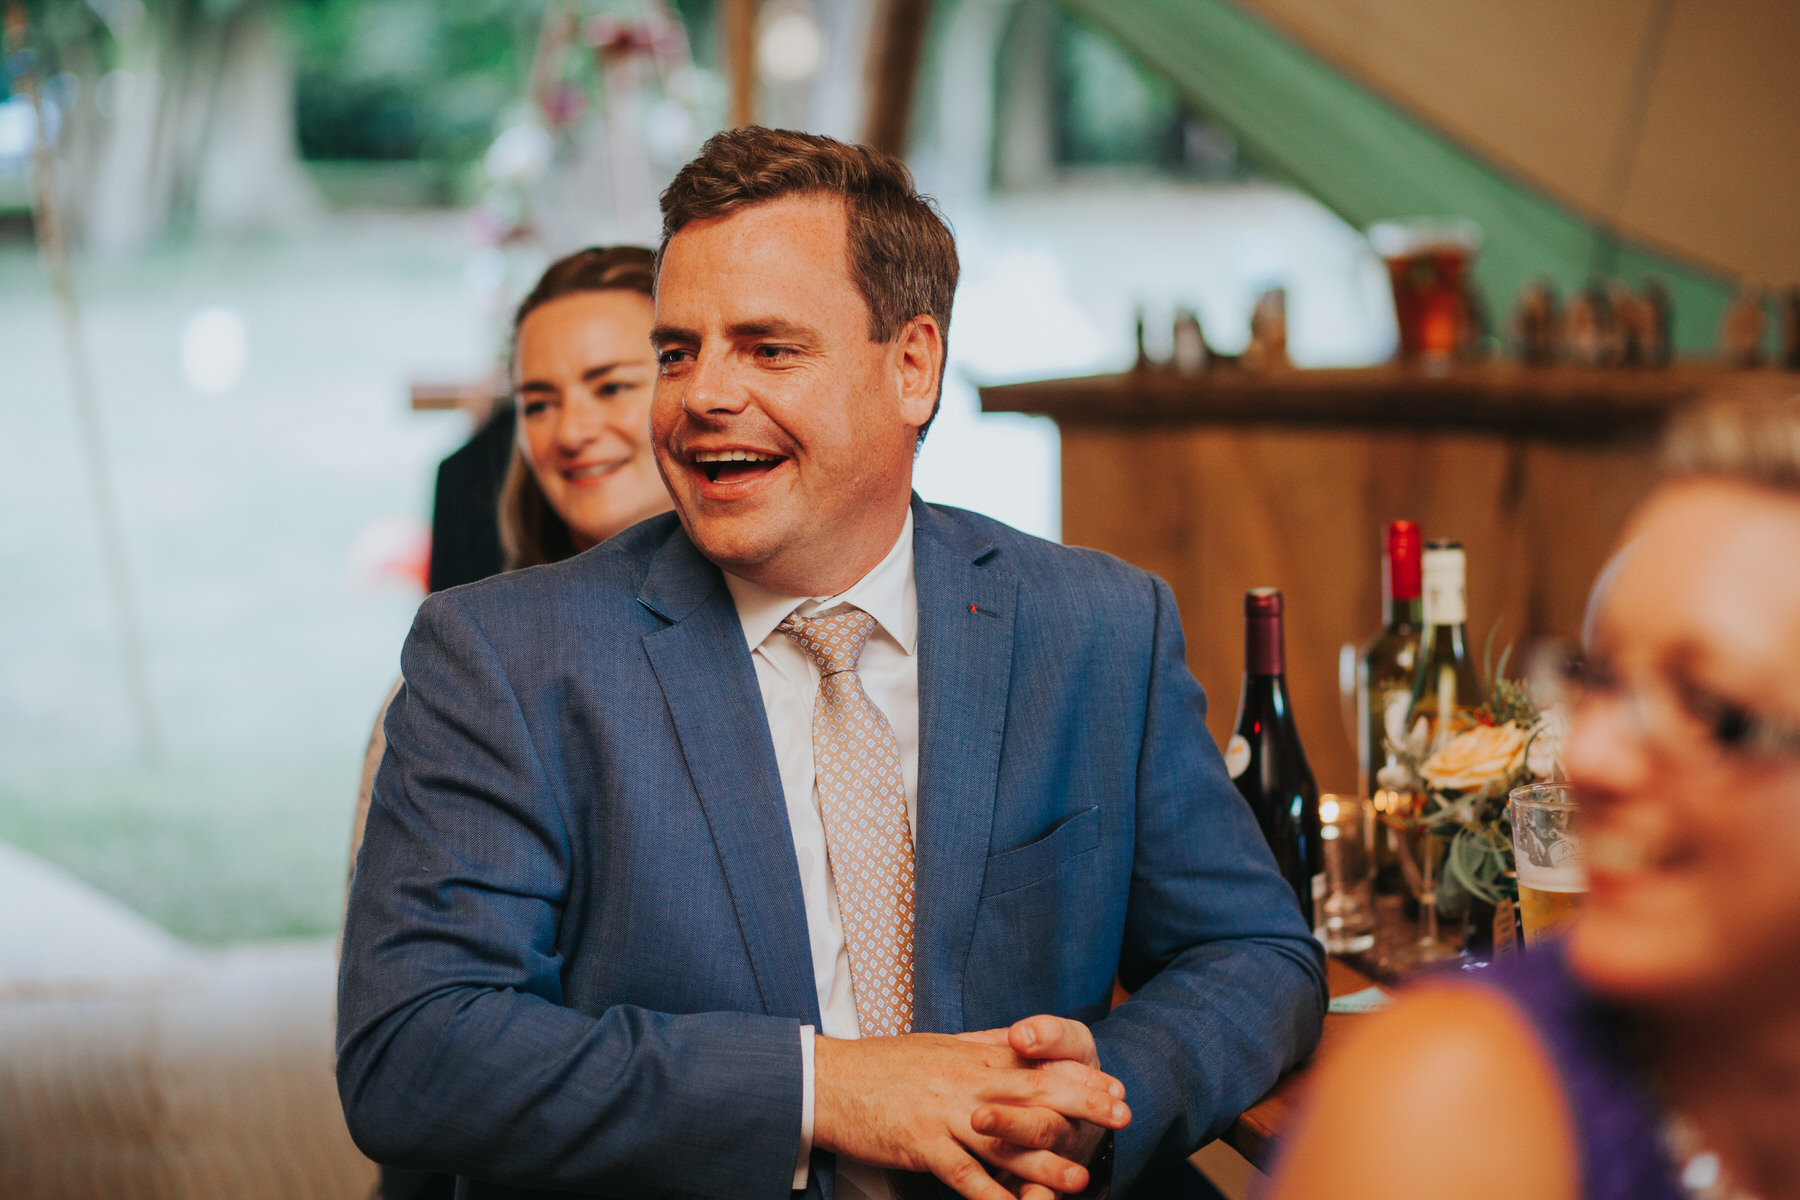 266 guest reactions speeches Knepp Castle documentary wedding photographer.jpg